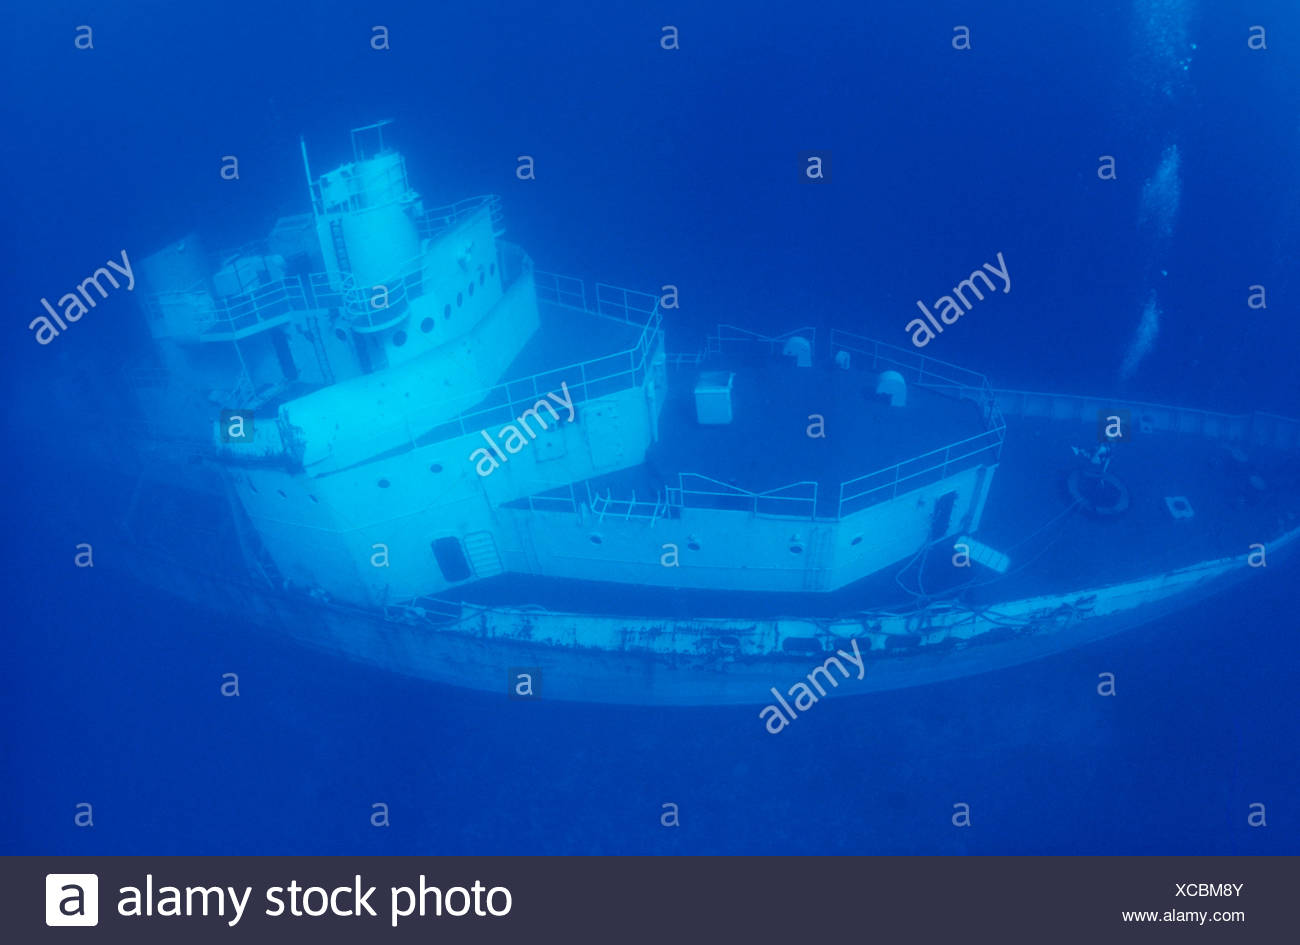 THE DAY THE USCG CUTTER DUANE WAS SUNK AS AN ARTIFICIAL REEF KEY LARGO FLORIDA - Stock Image